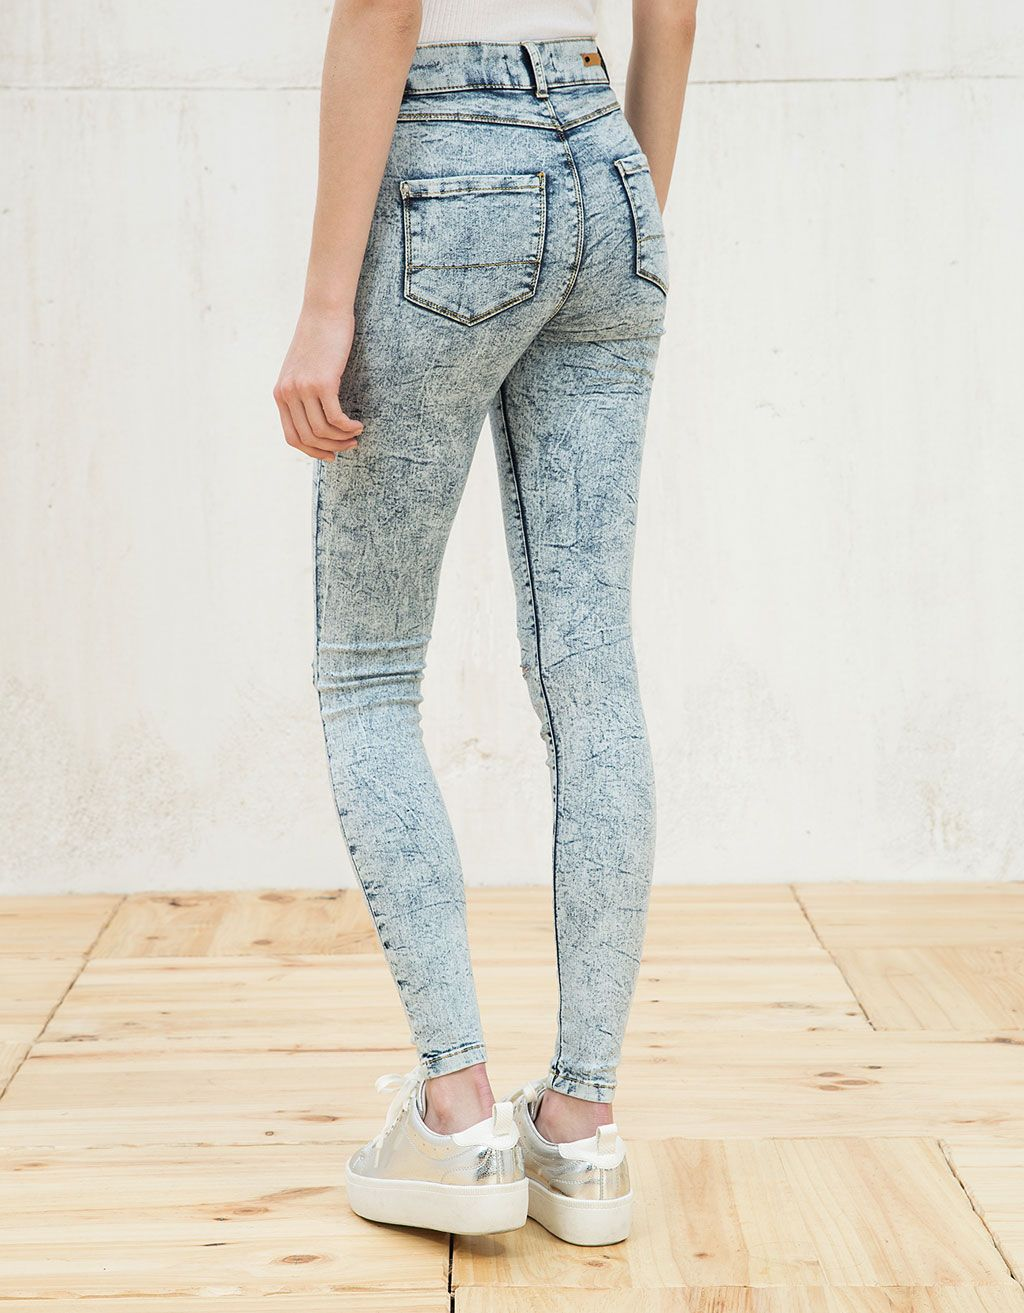 Access Denied Ripped Jeans Outfit Womens Jeans Skinny Denim Women